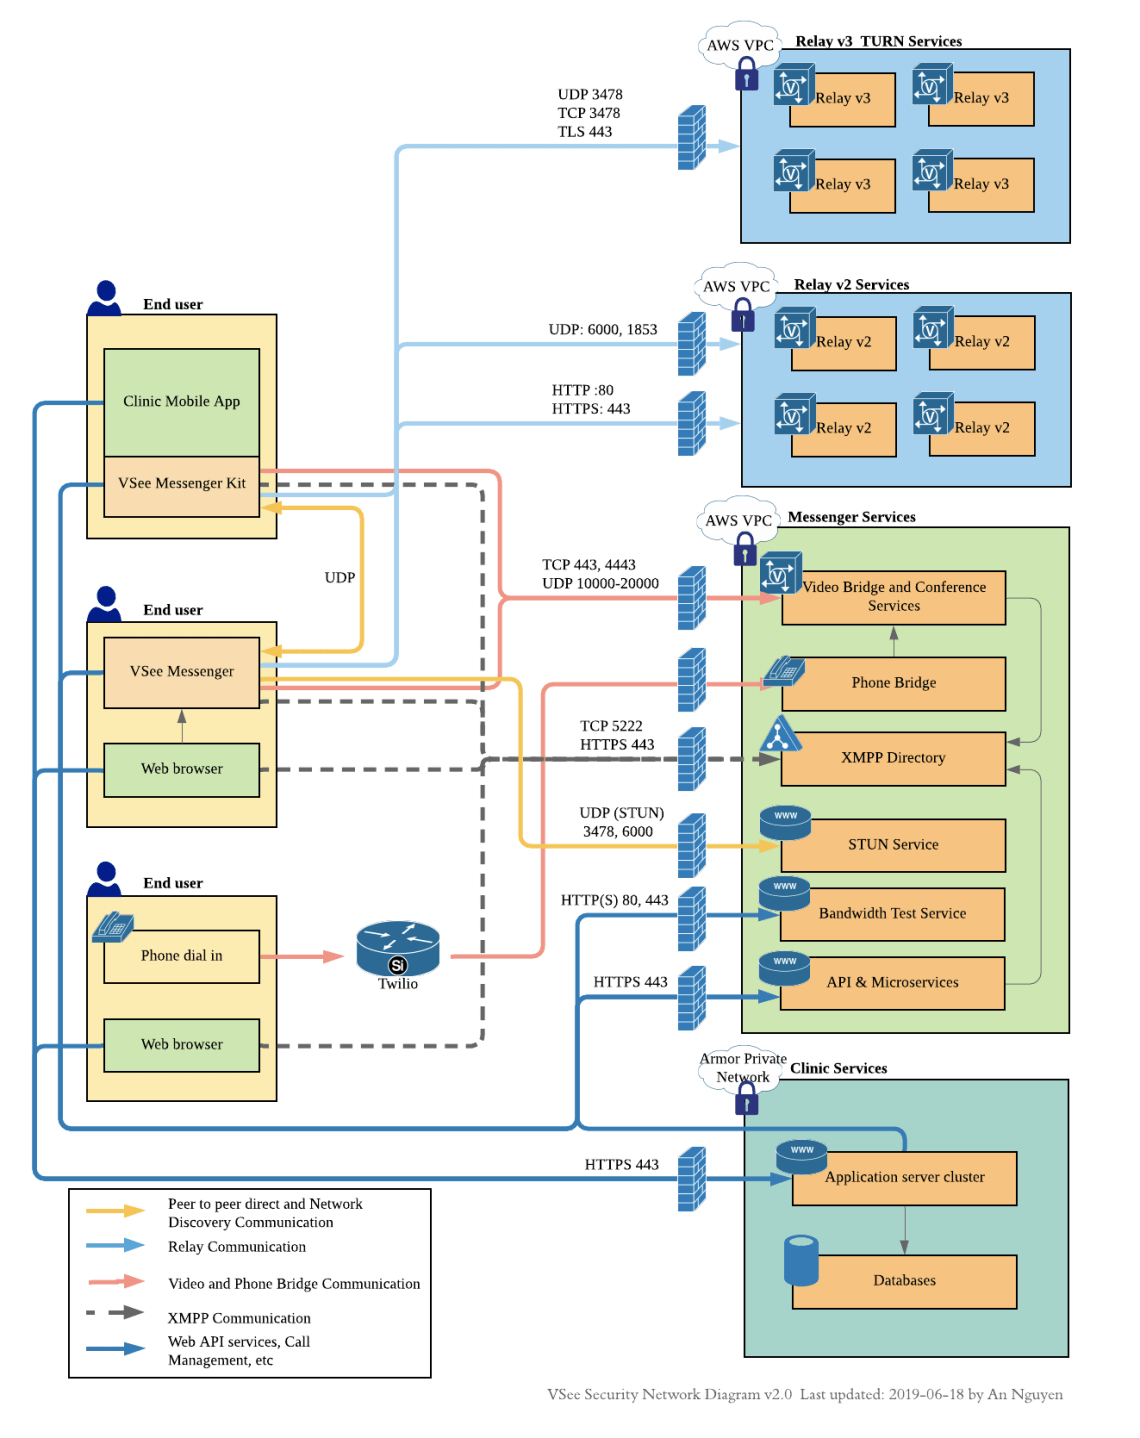 VSee Network Security Diagram v2.0